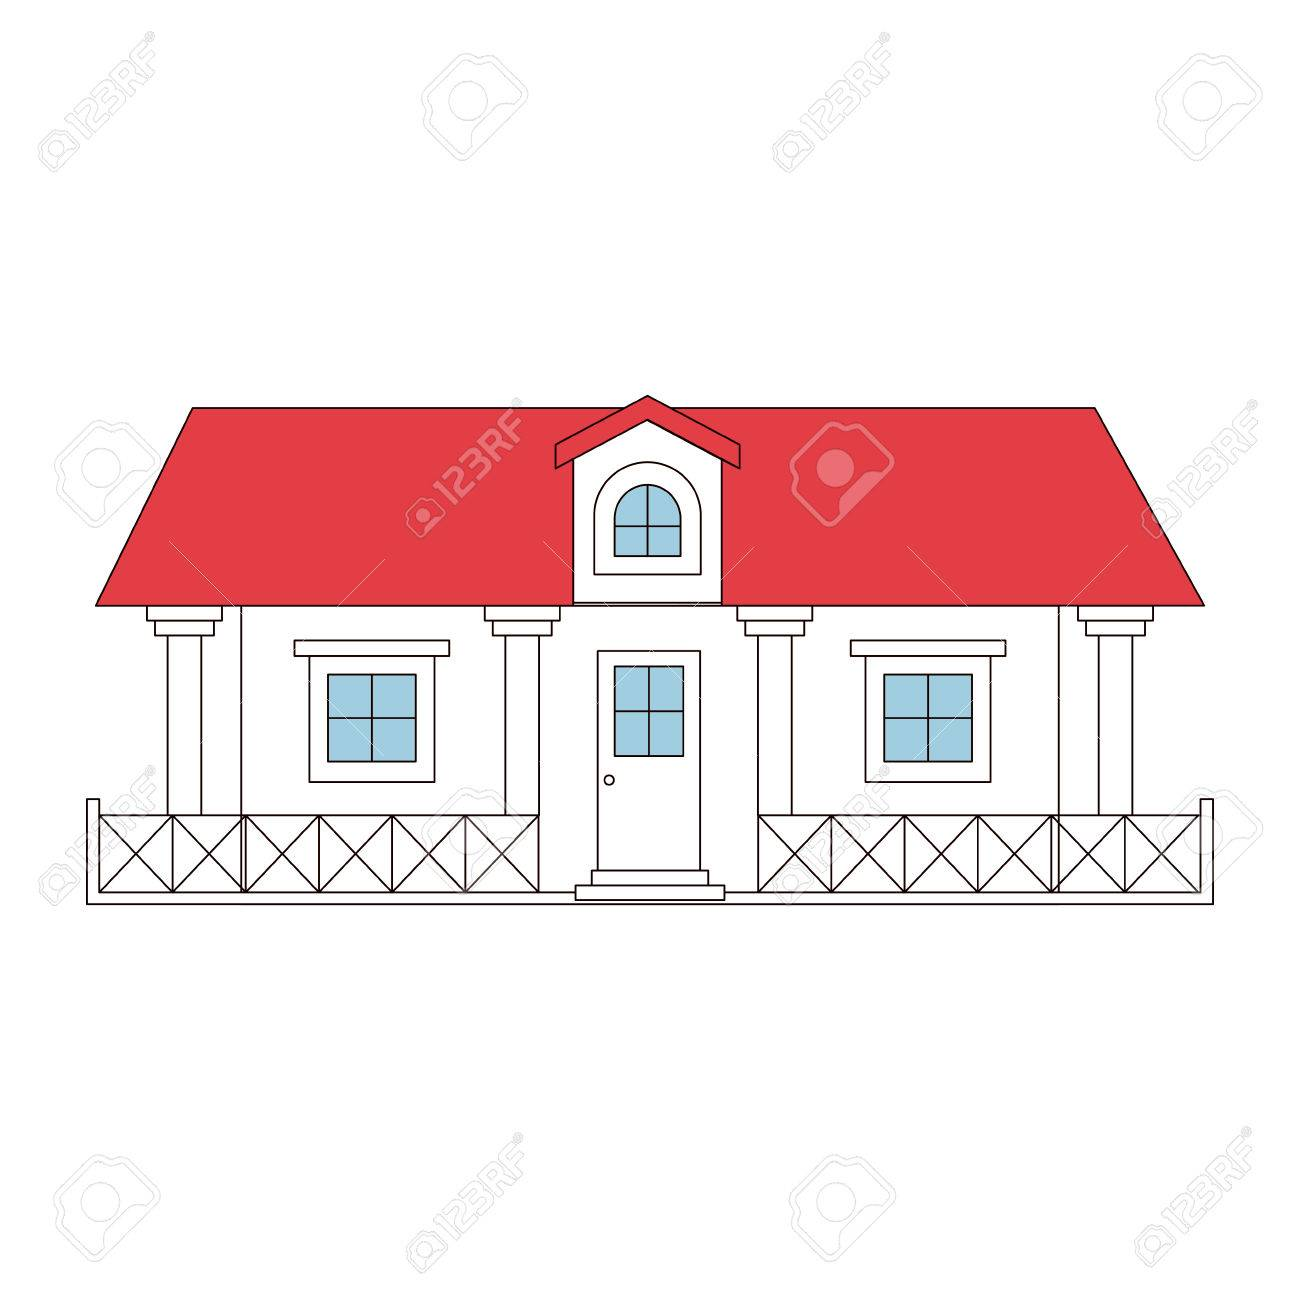 Roof and attic of a country house 41